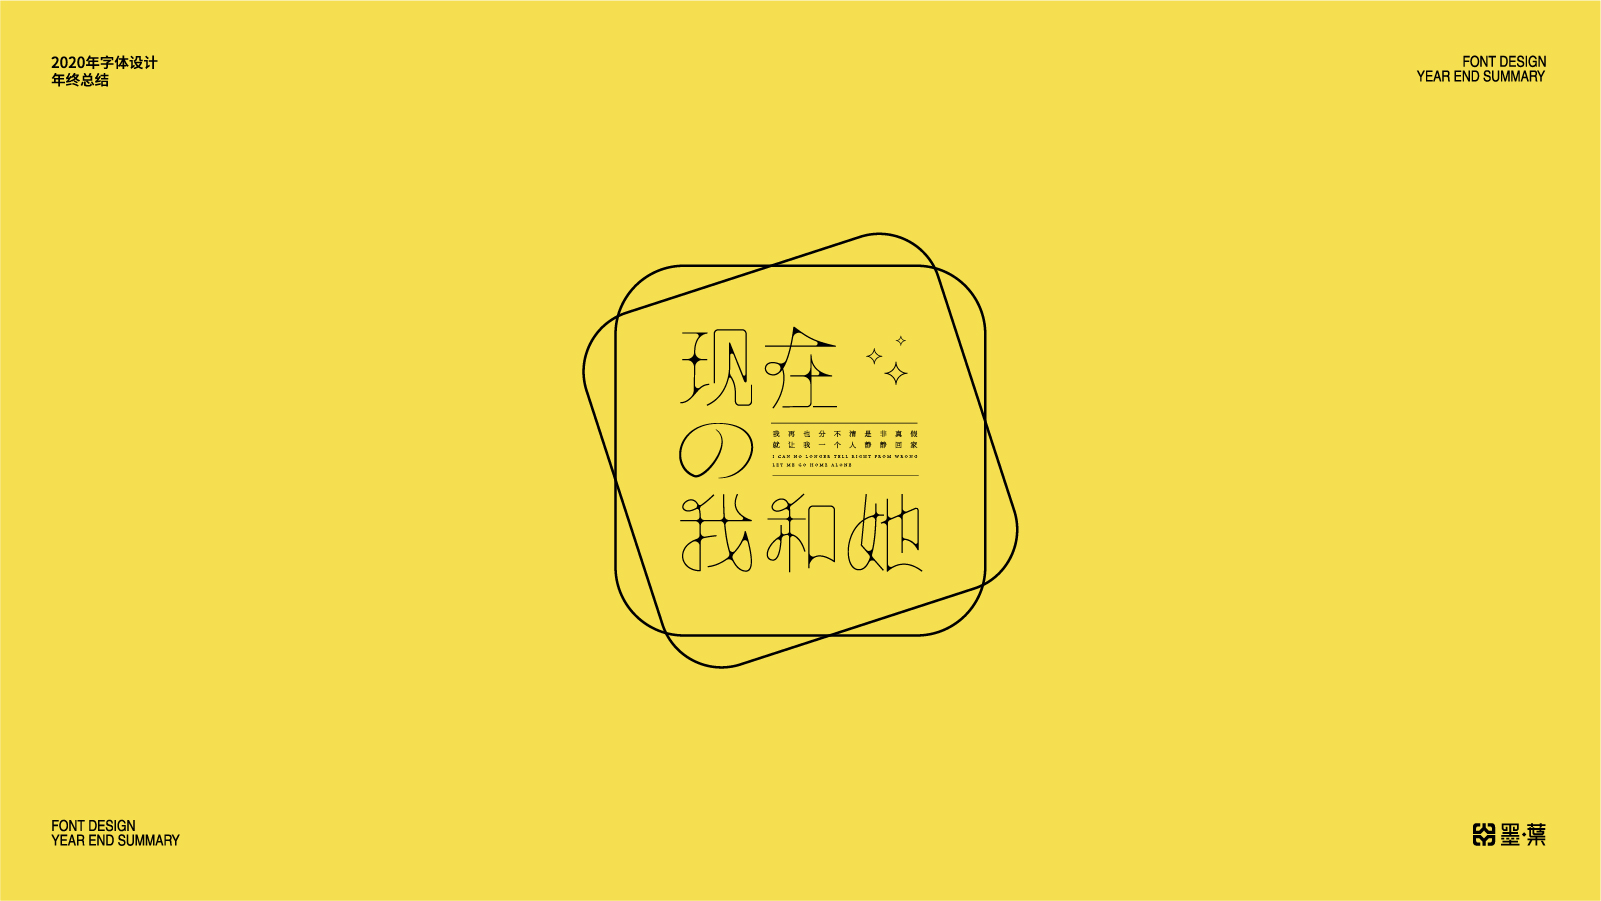 Commercial font design with yellow background